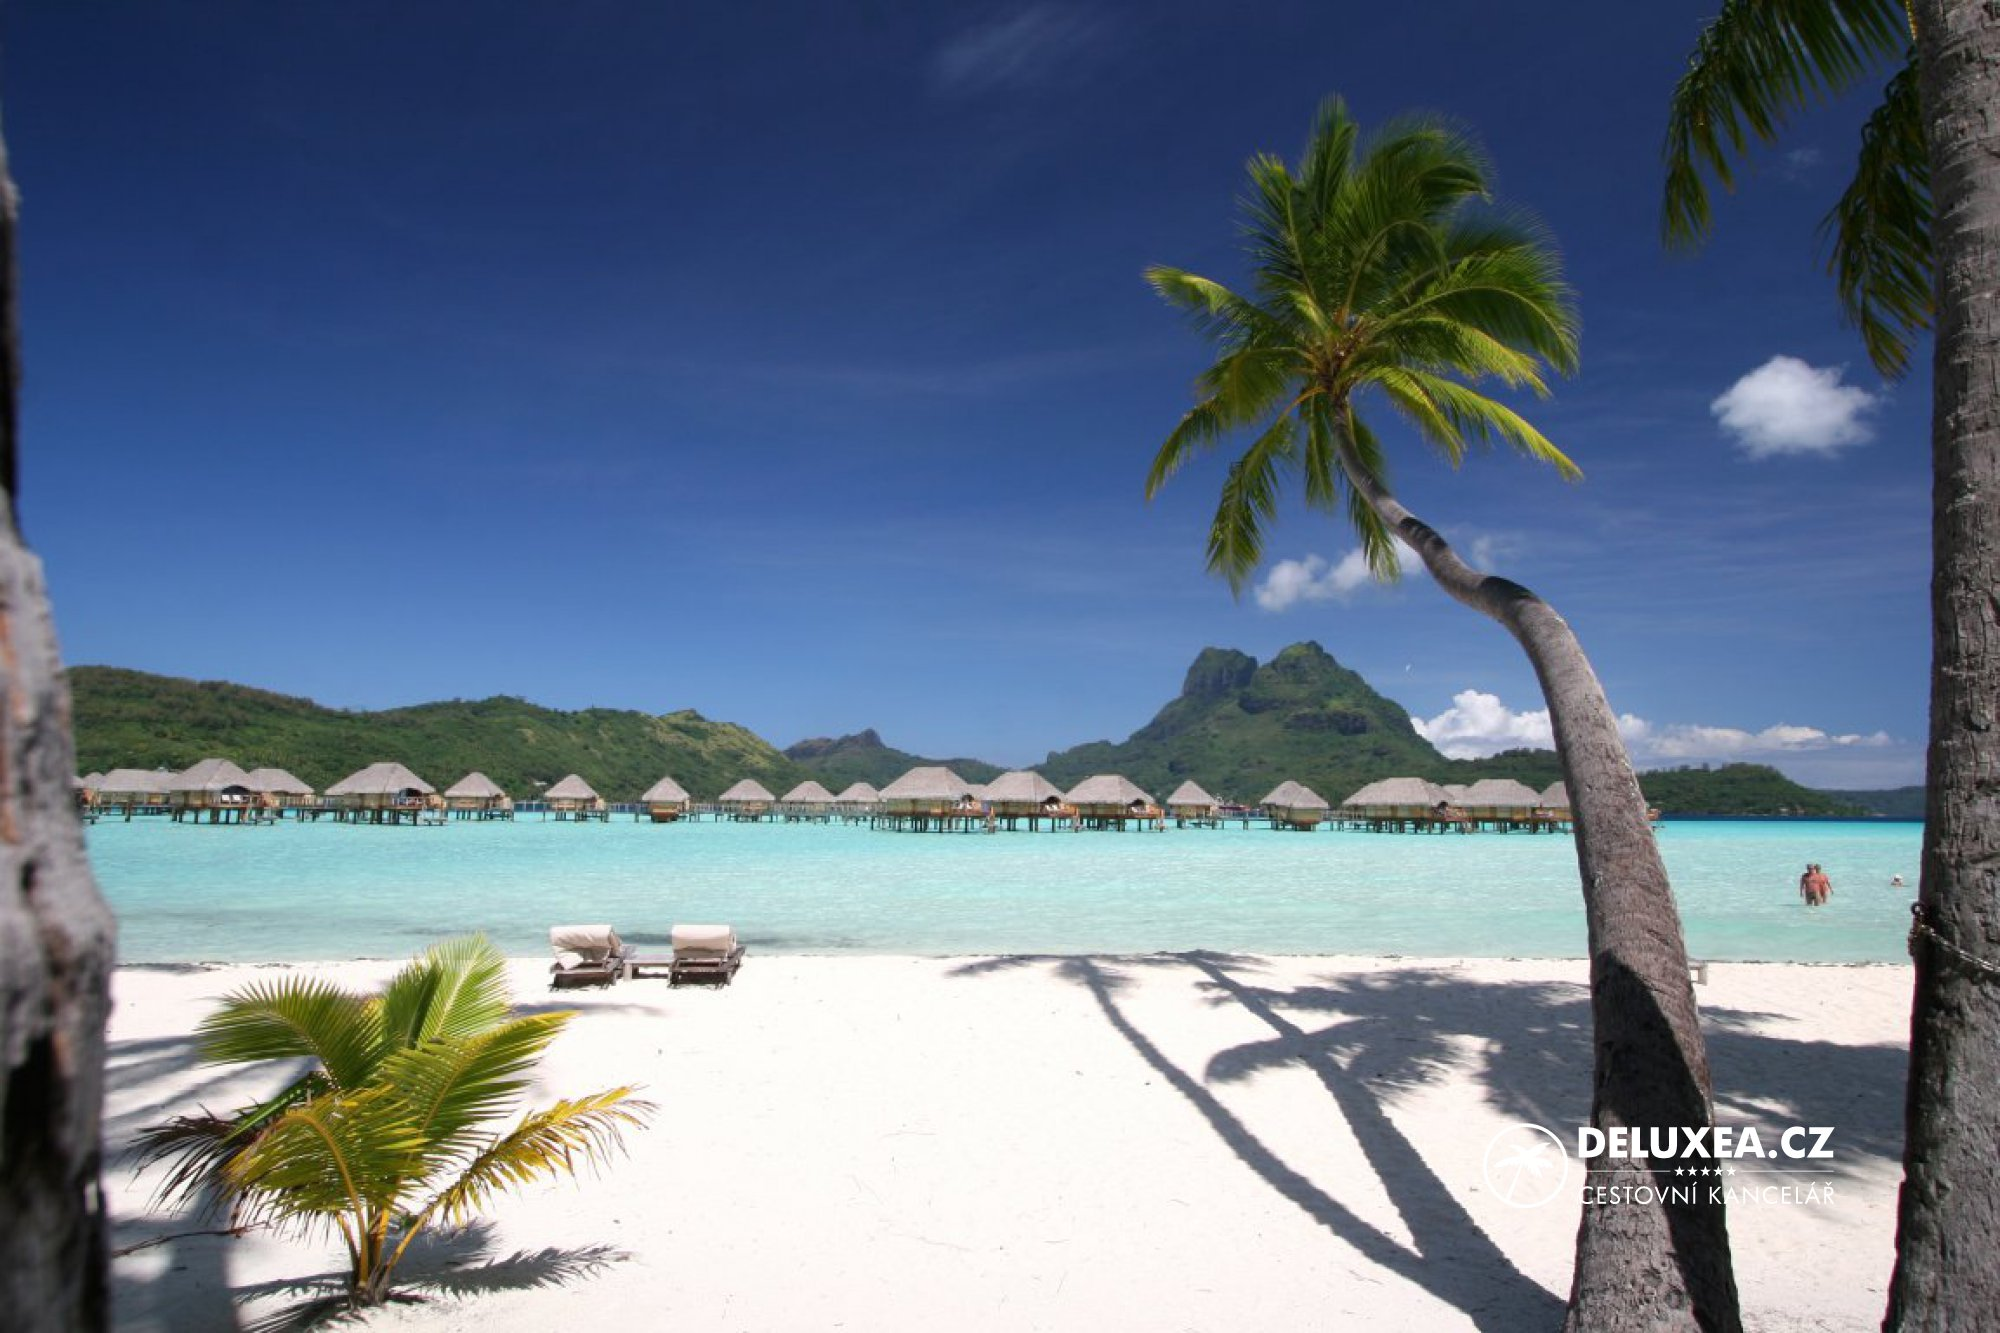 hotel bora bora pearl beach resort: